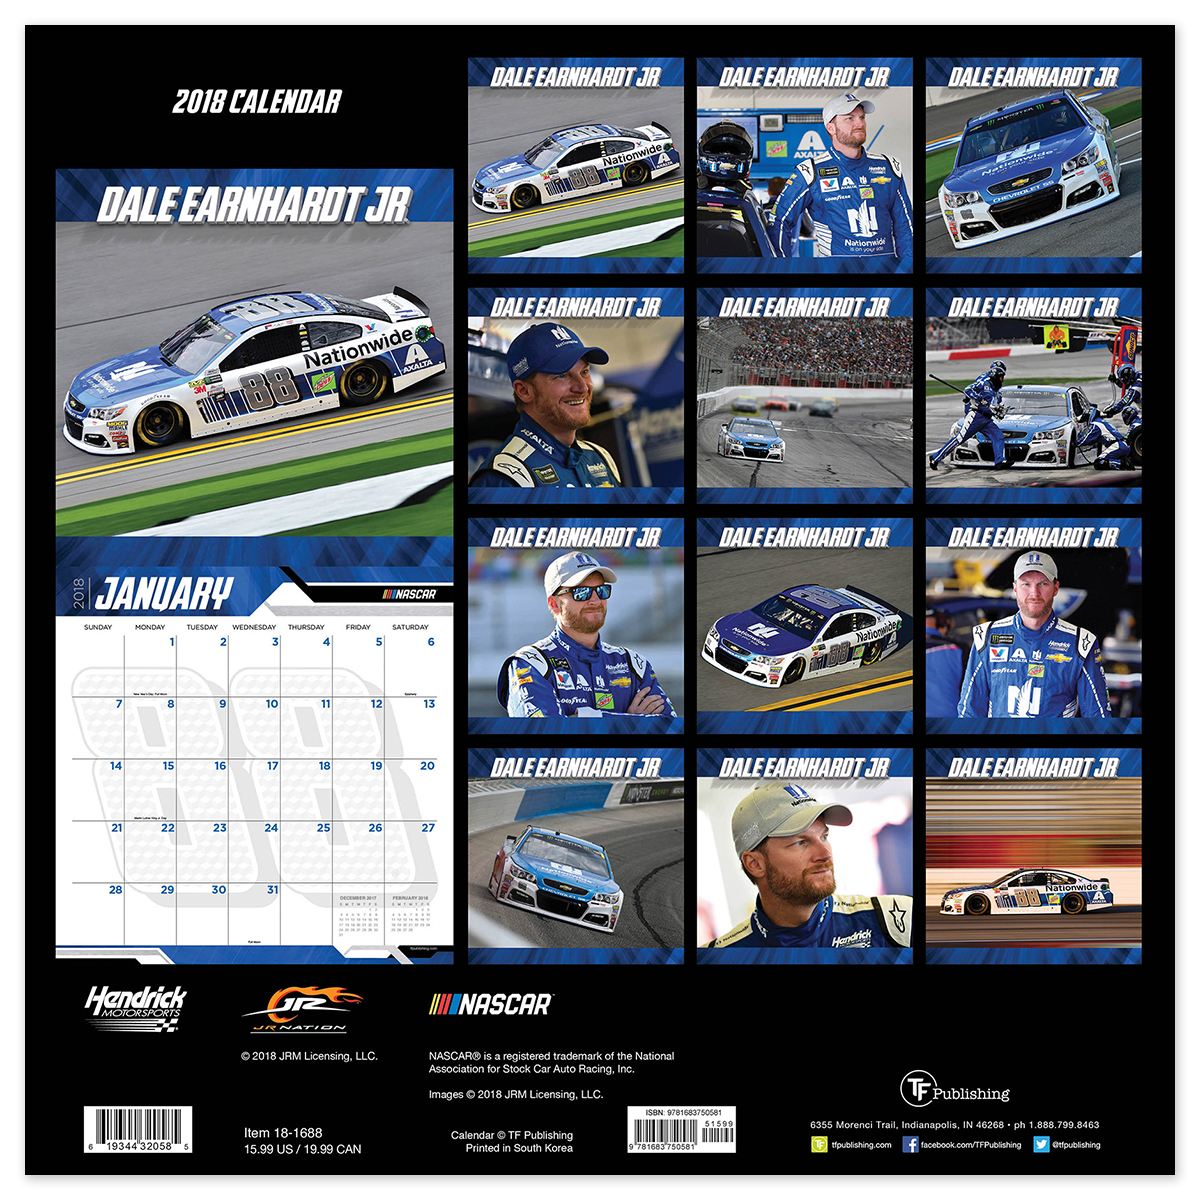 dale earnhardt jr 88 2018 12x 12 wall calendar